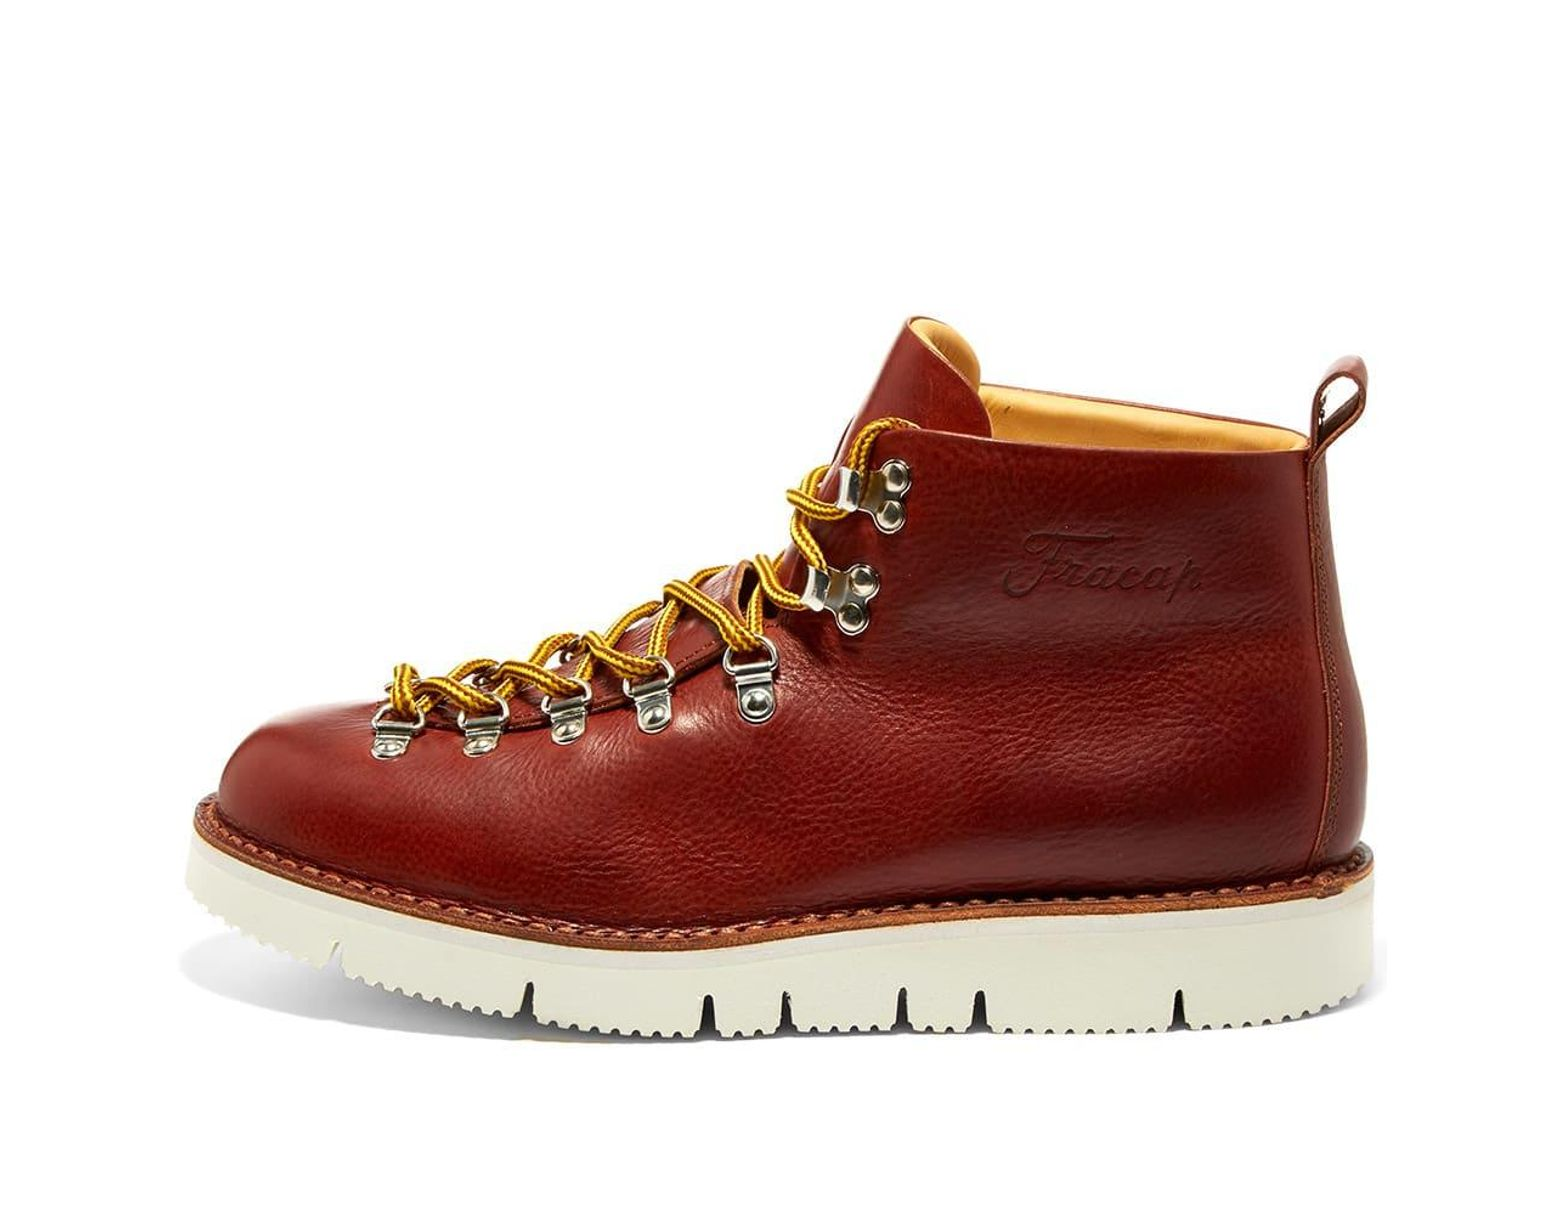 672ab88fb4b Fracap M120 Ripple Sole Scarponcino Boot in Brown for Men - Save 48 ...